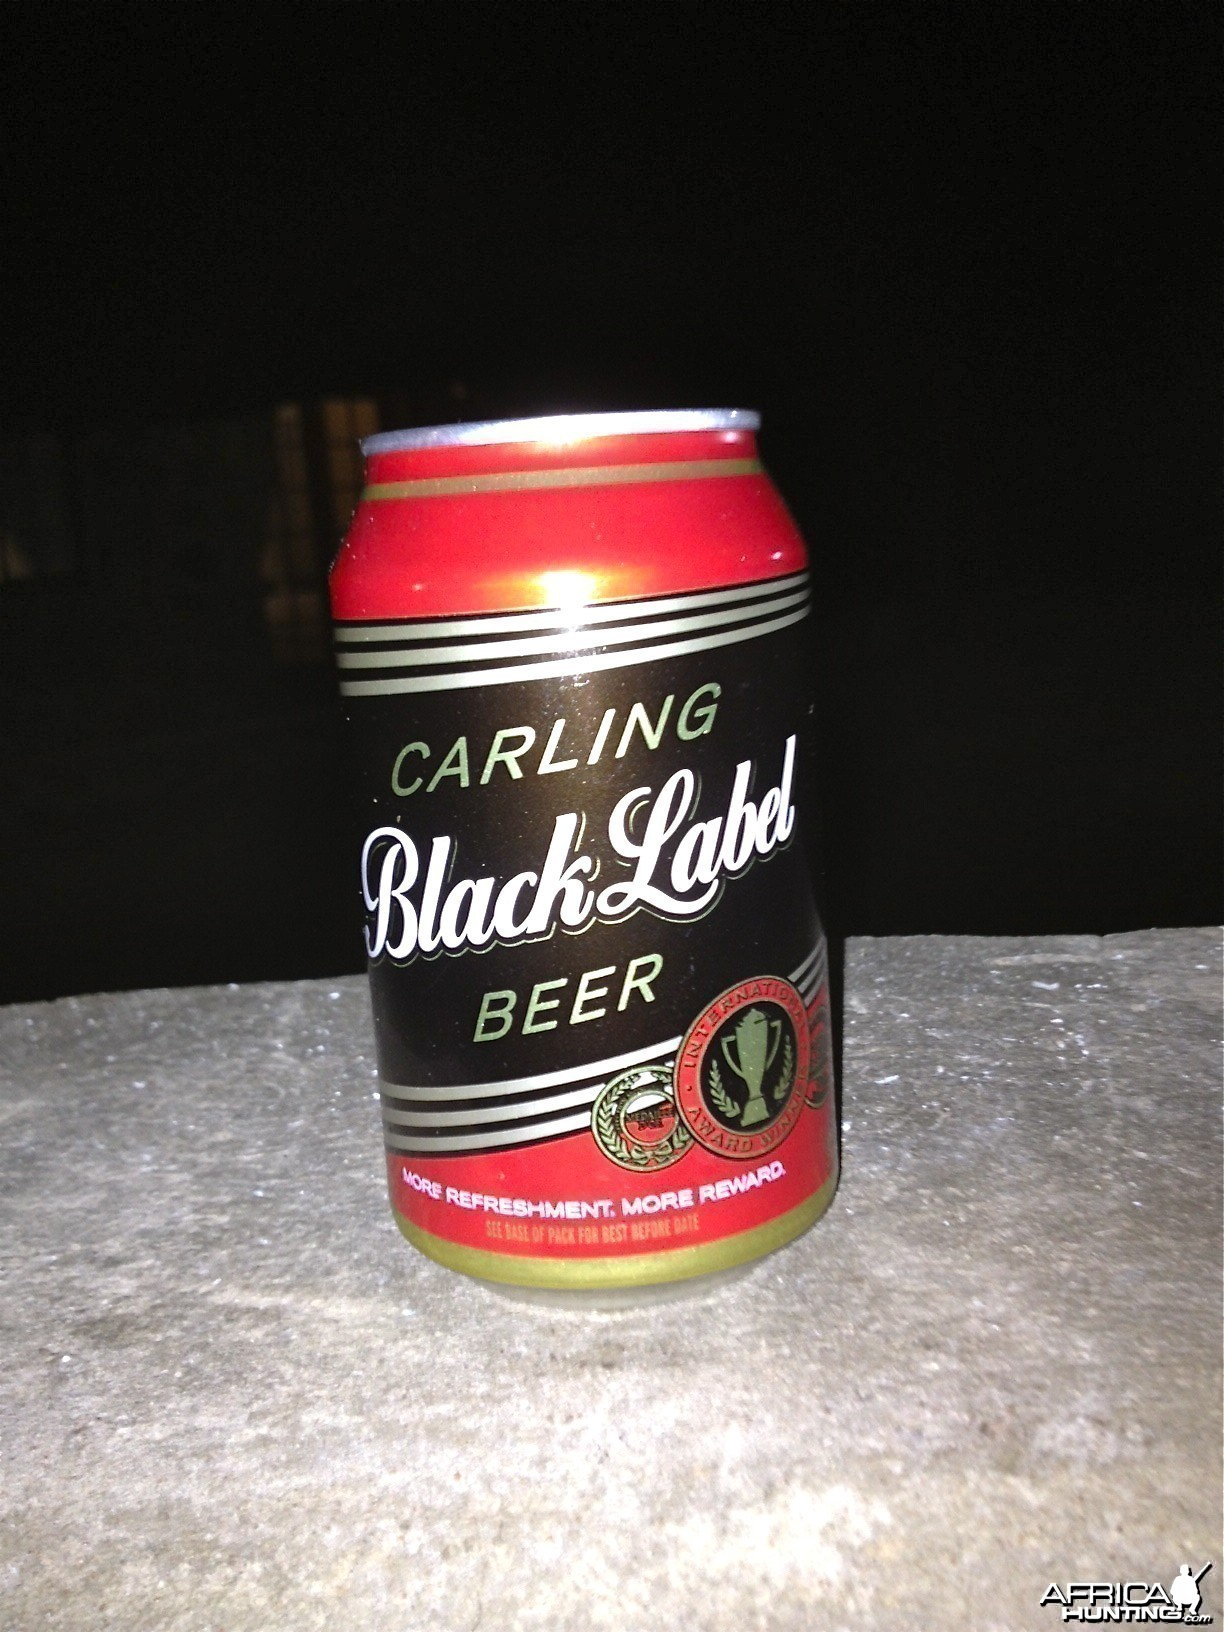 Carling Black Label Beer